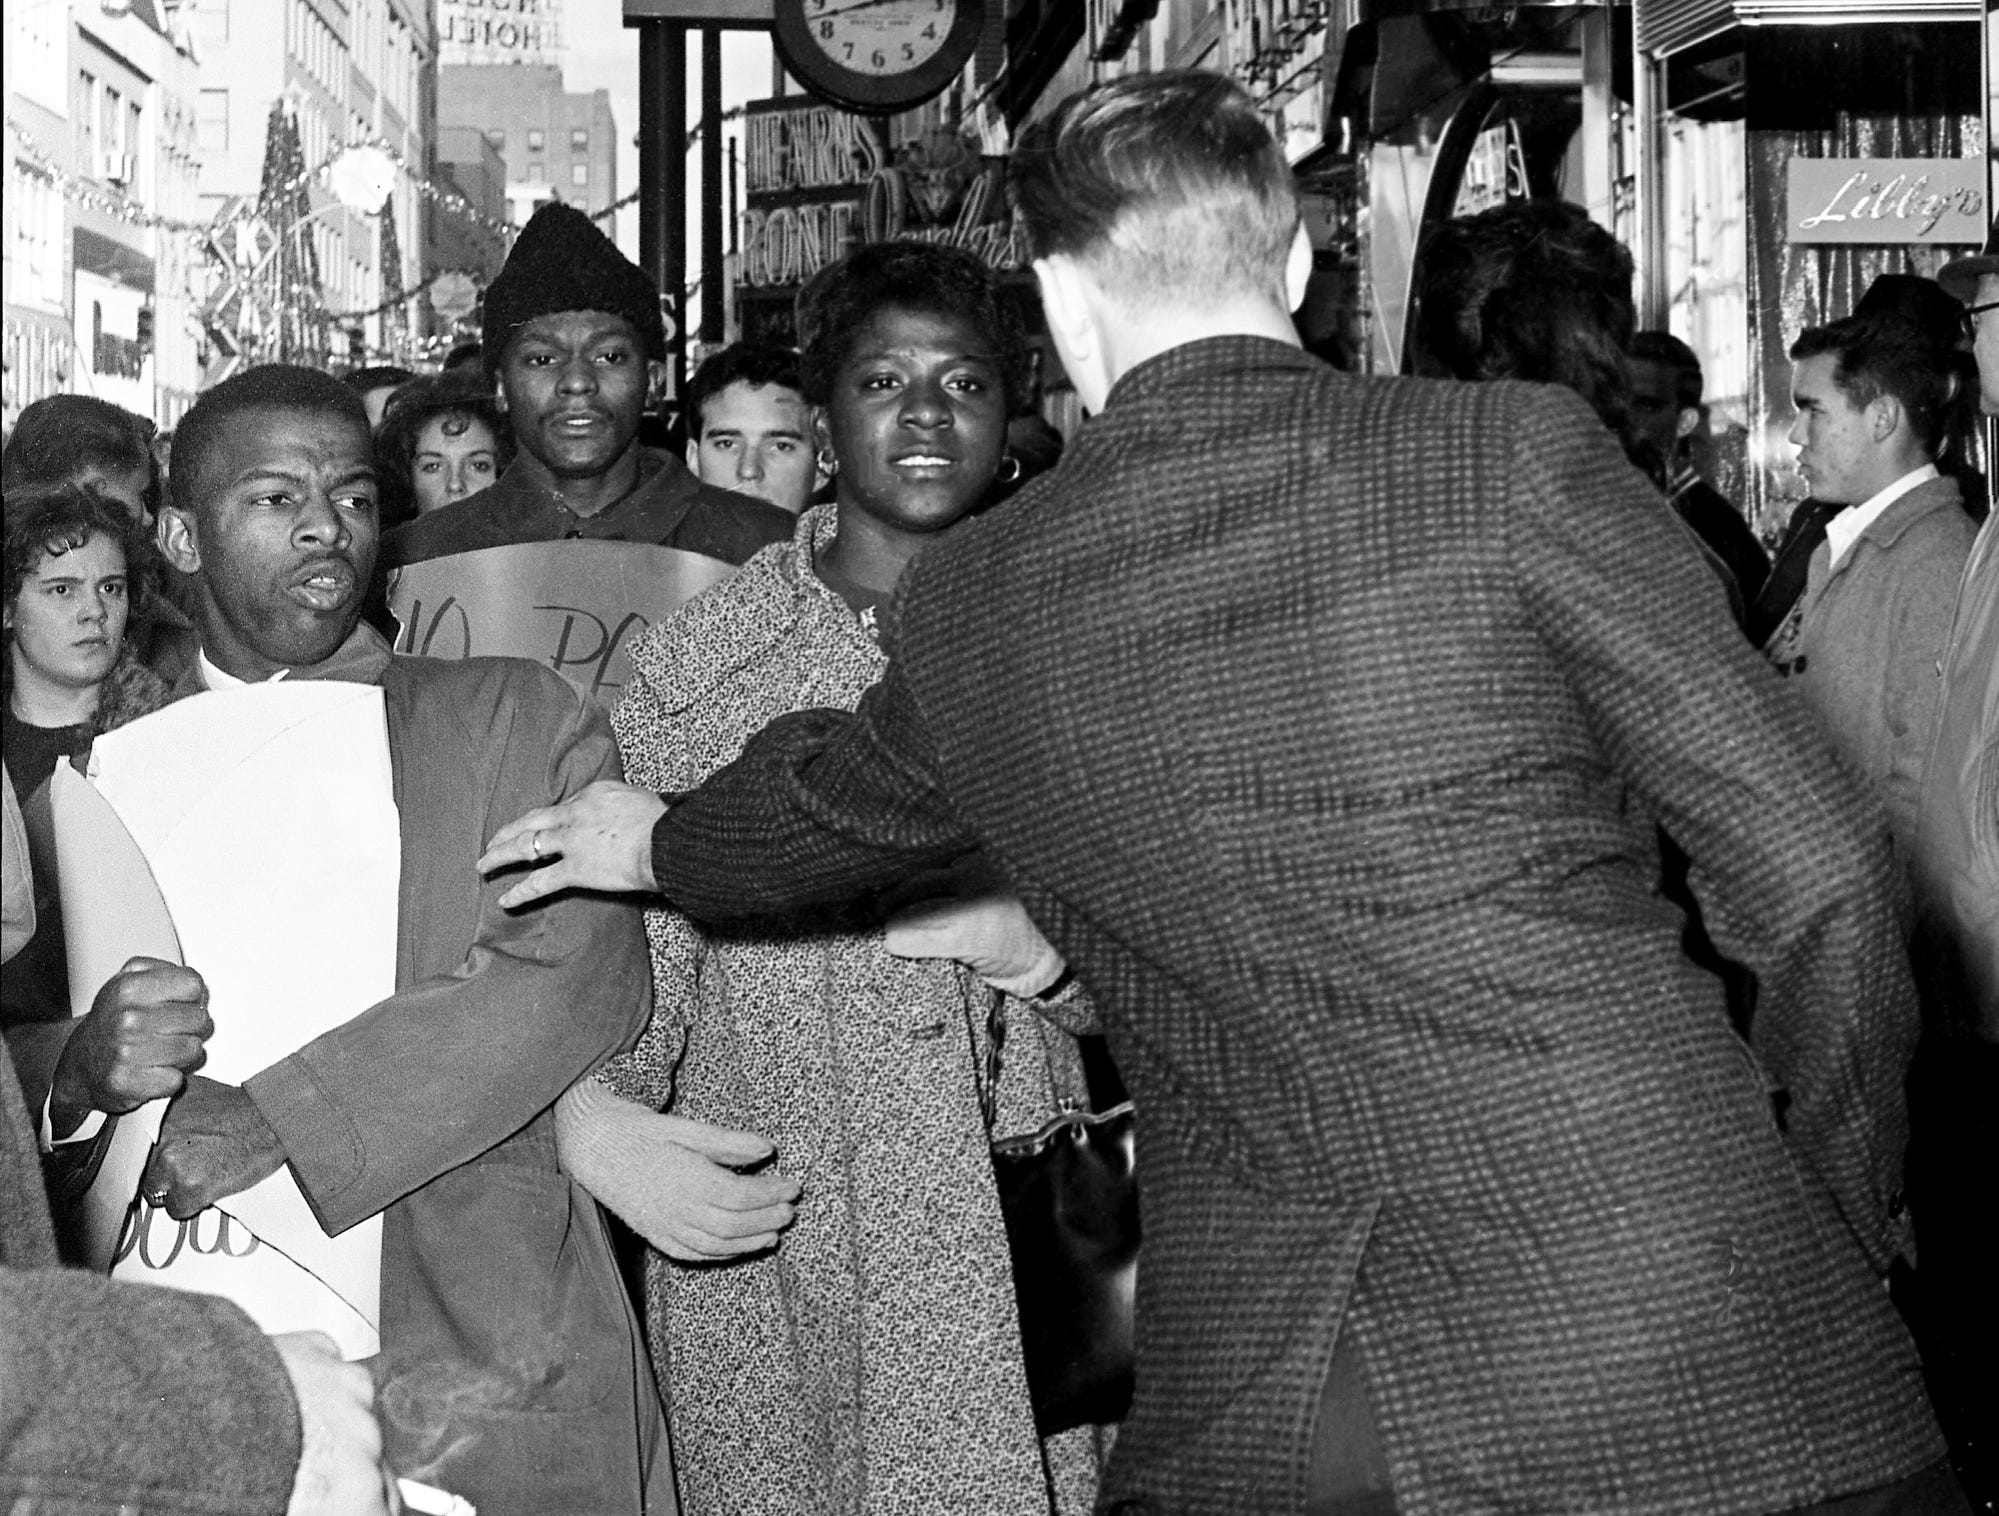 John Lewis, left, chairman of the local Non-Violent Committee, holds tightly onto his sign as a heckler reaches for him as Lewis and 12 other sit-in demonstrators try to get in the Herschel's Tic Toc restaurant on Church Street on Dec. 8, 1962. Behind Lewis is demonstrator Lester McKinnie.